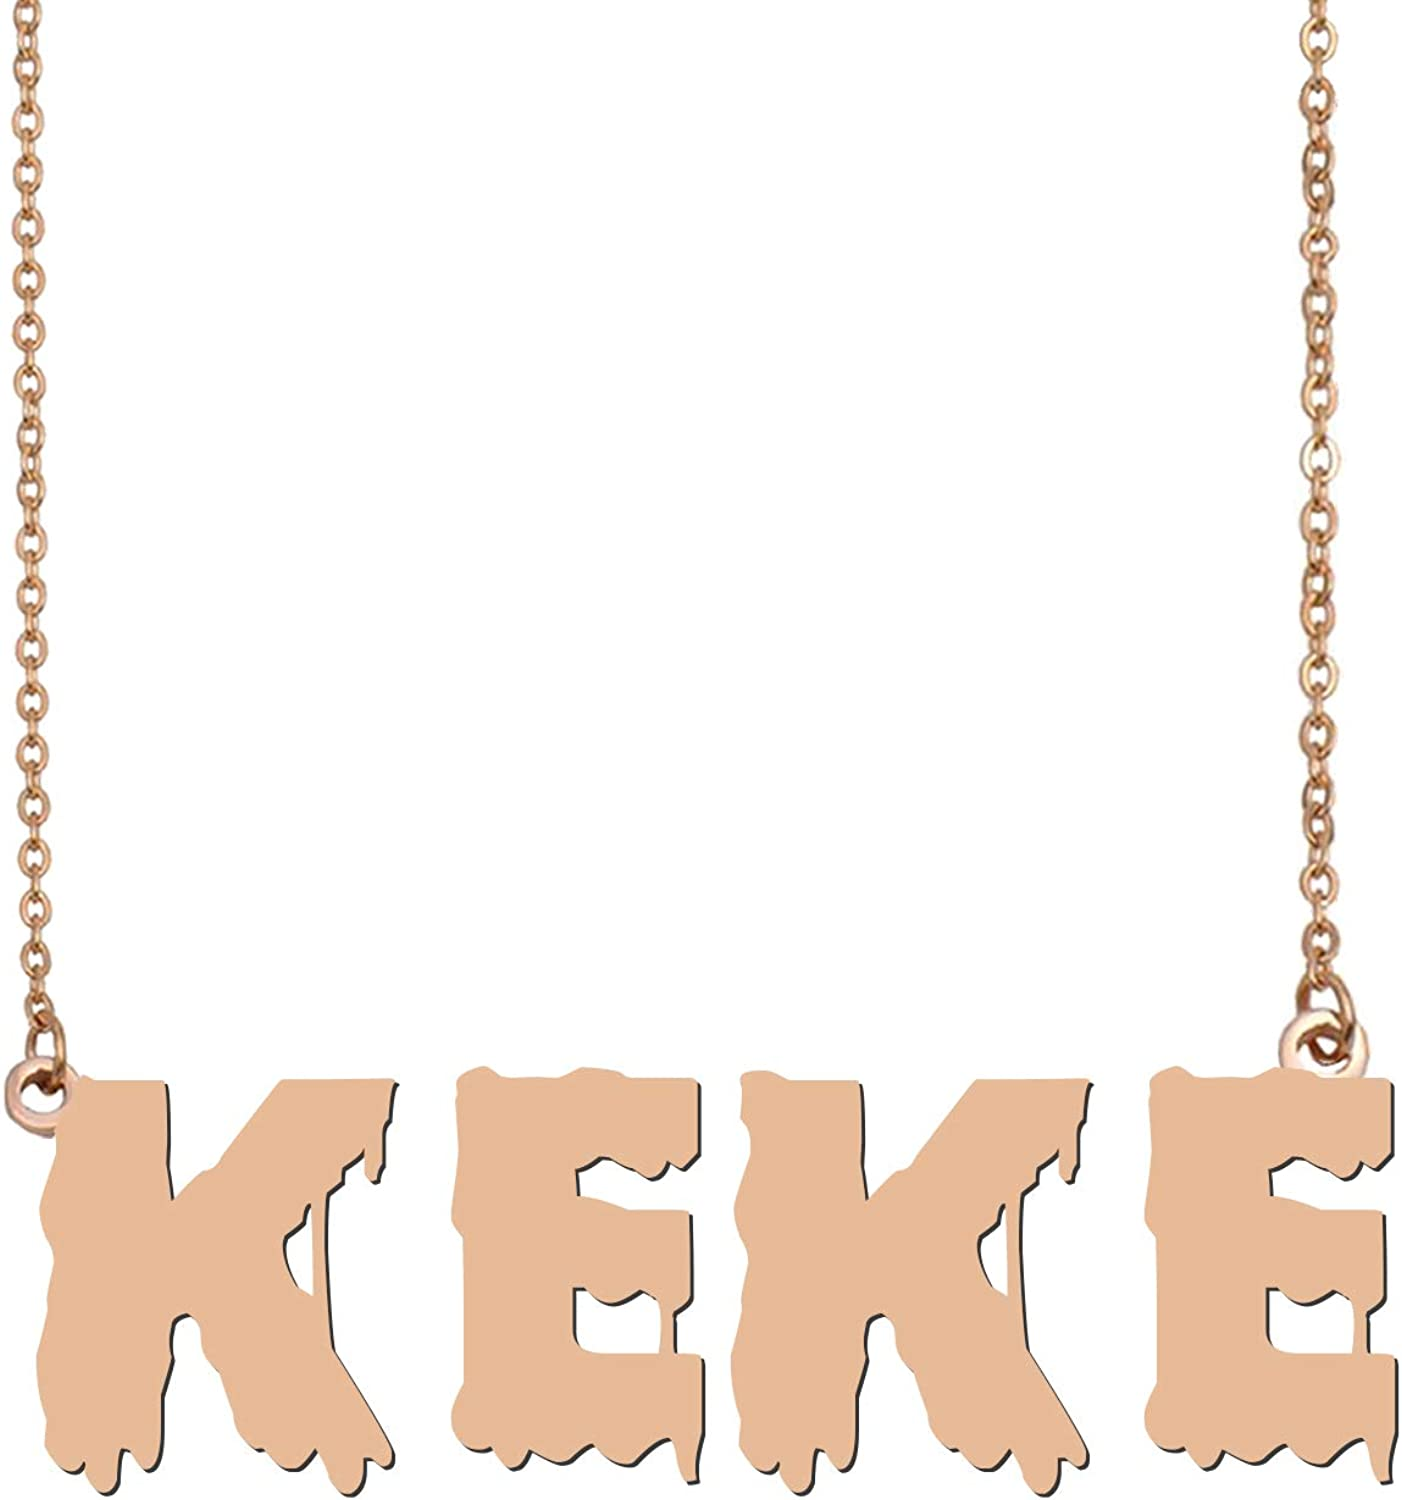 HUAN XUN Personalized Name Necklace Custom Made Pendant Jewelry Gifts